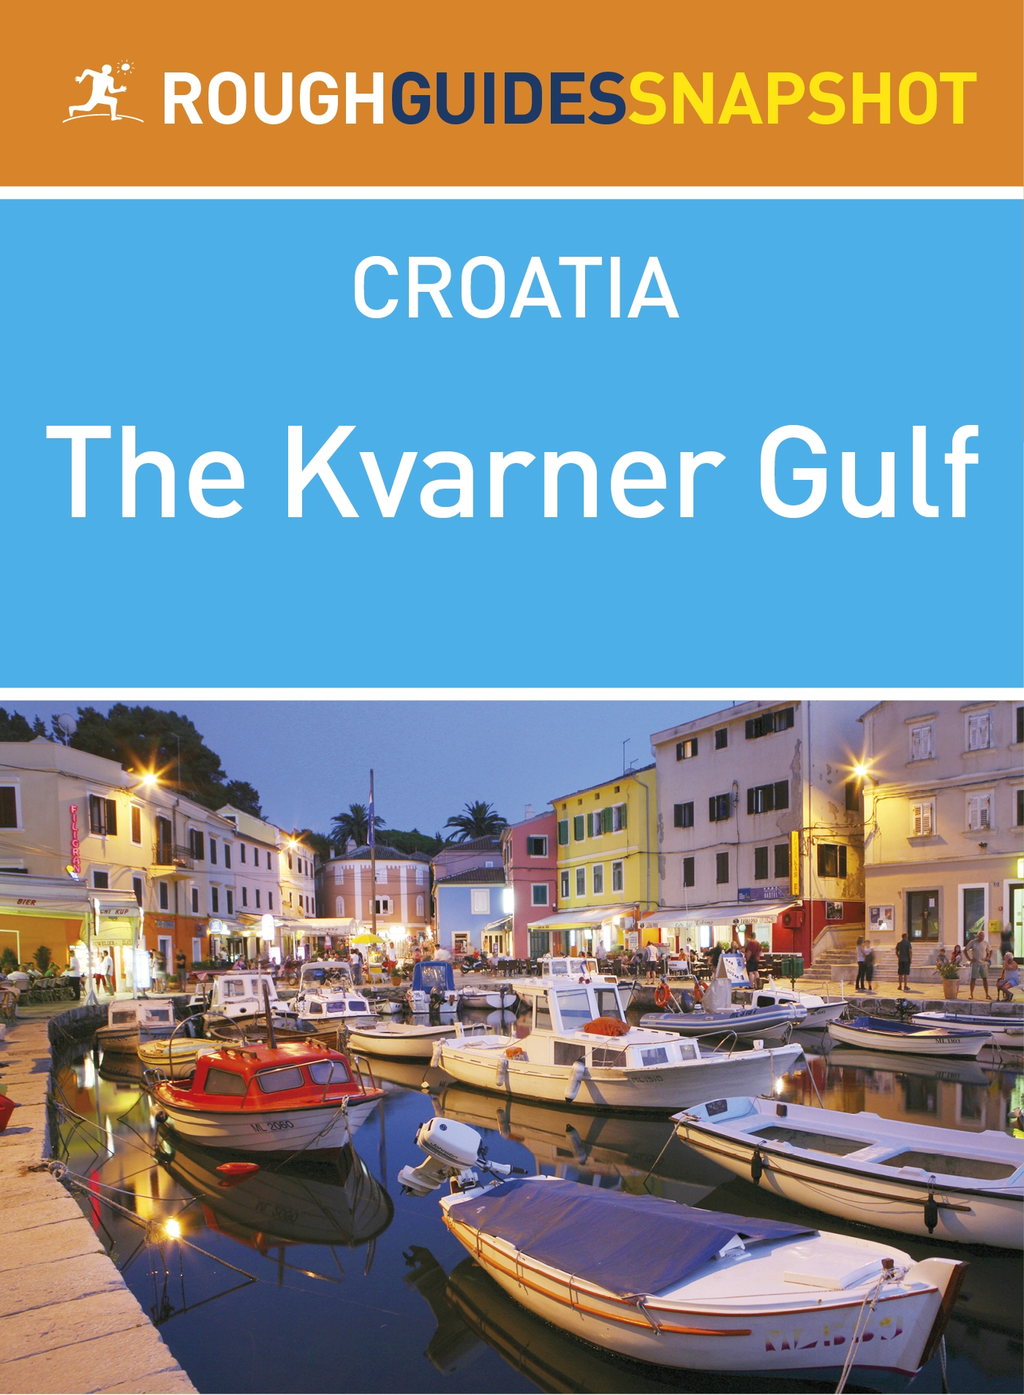 The Kvarner Gulf Rough Guides Snapshot Croatia (includes Rijeka, Opatija, Lovran, Cres, Lošinj, Krk, the Velebit, Rab and Pag)